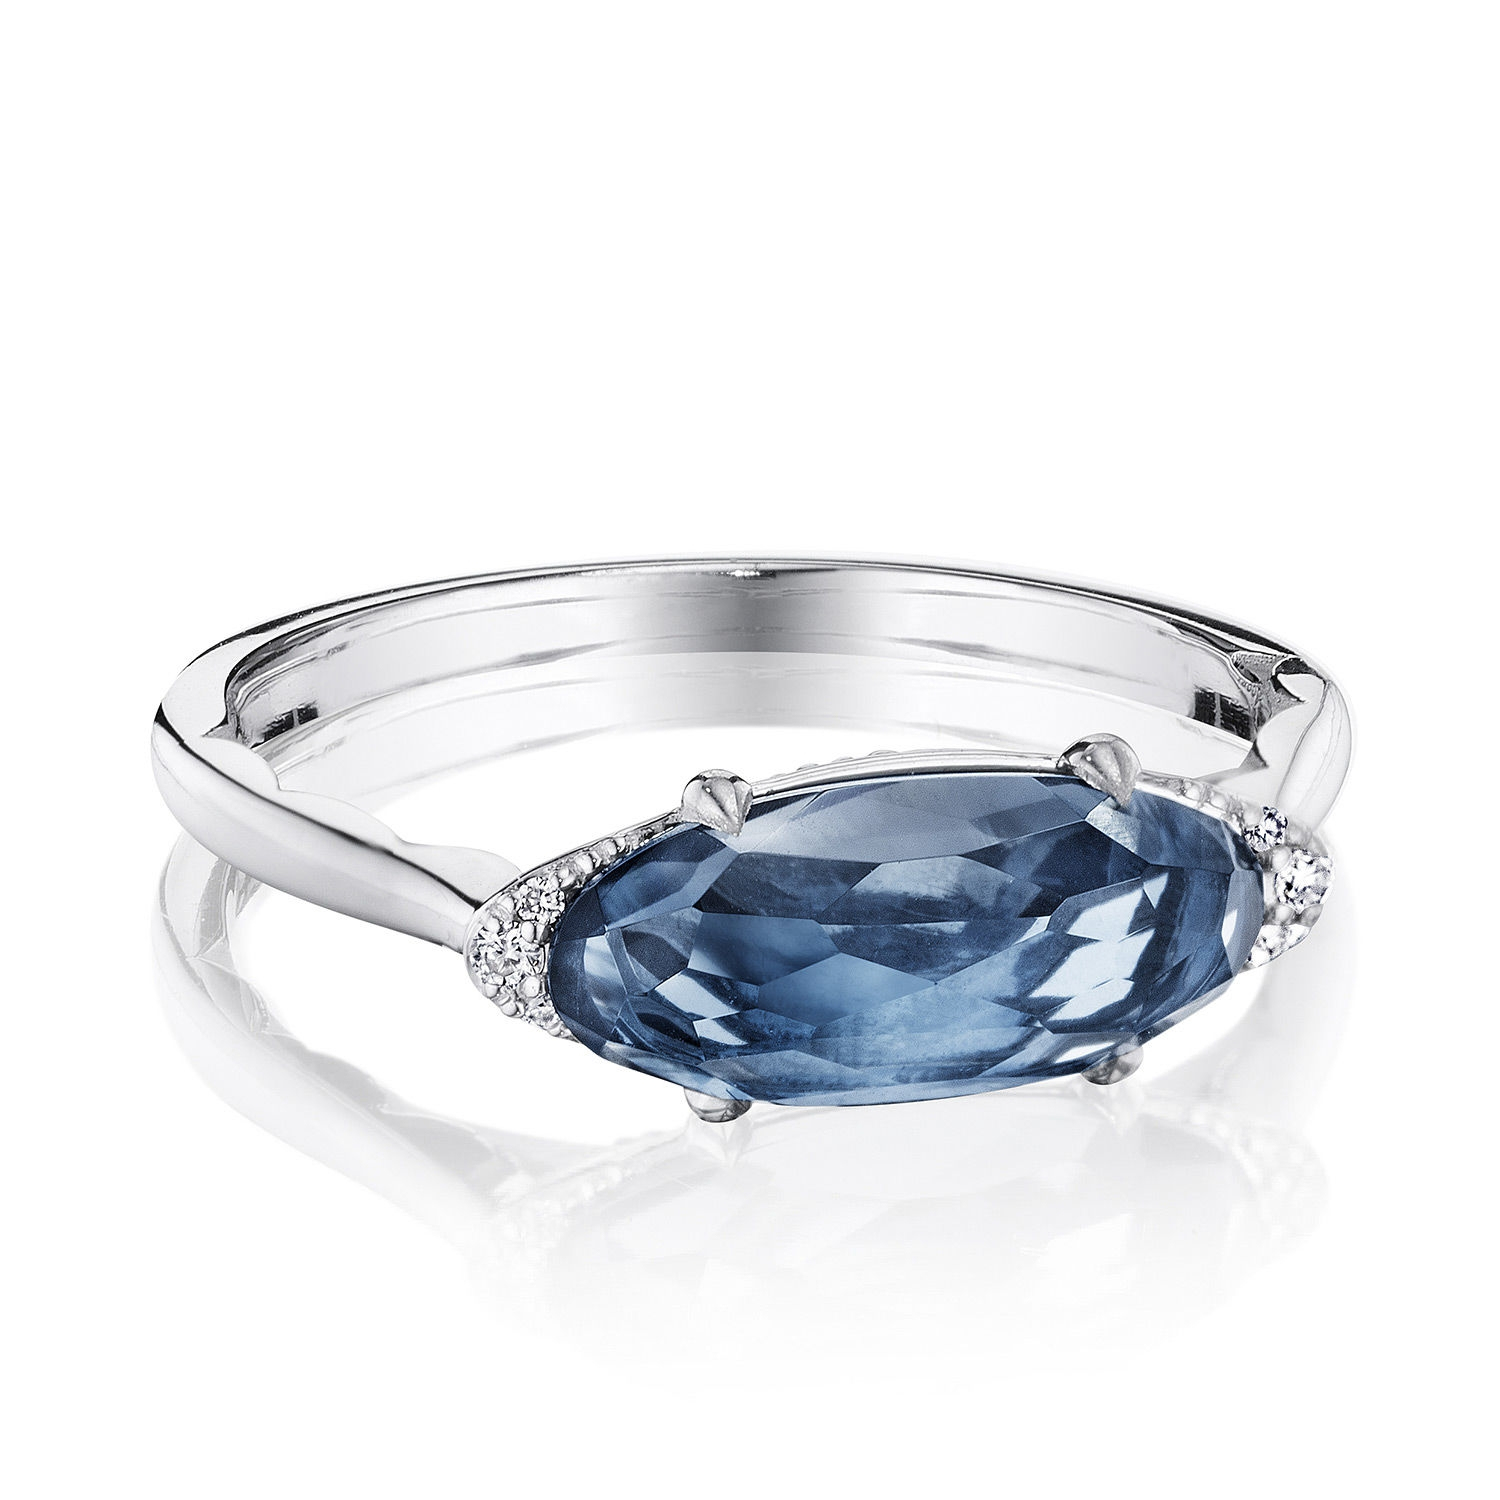 Tacori SR22333 Solitaire Oval Gem Ring with London Blue Topaz